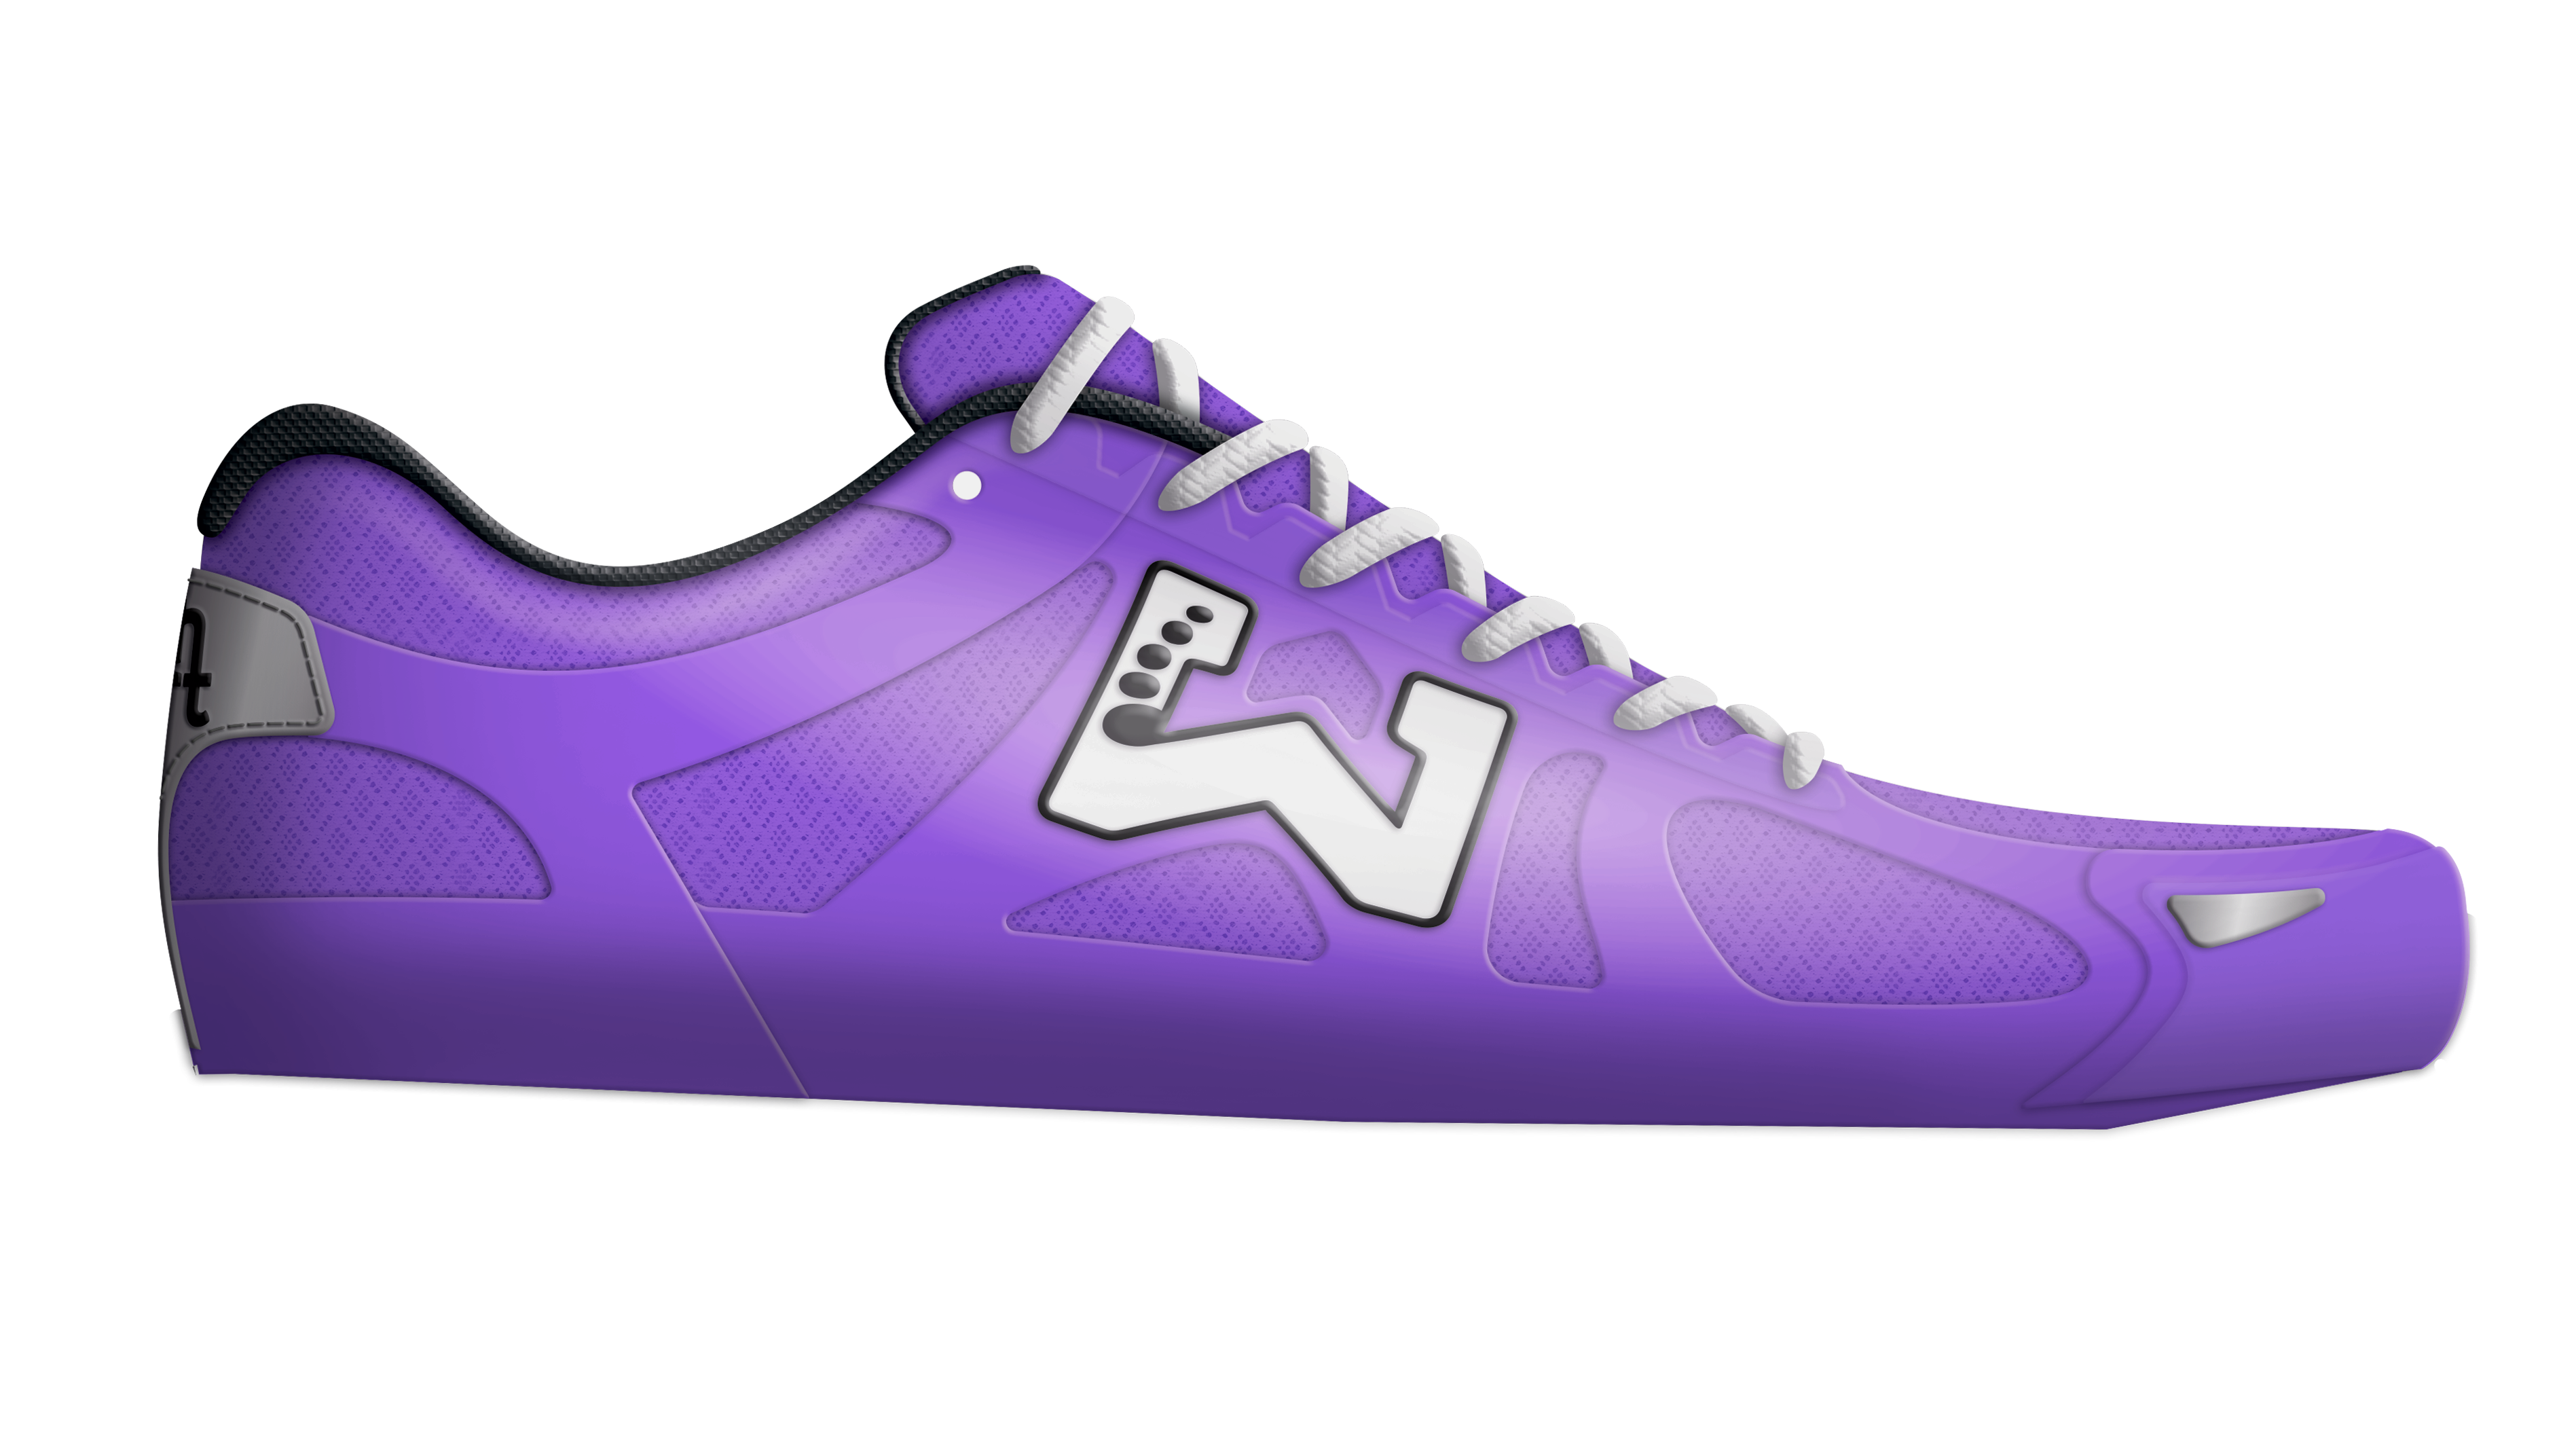 mathsportv2 - Purple - 10MM - Racer